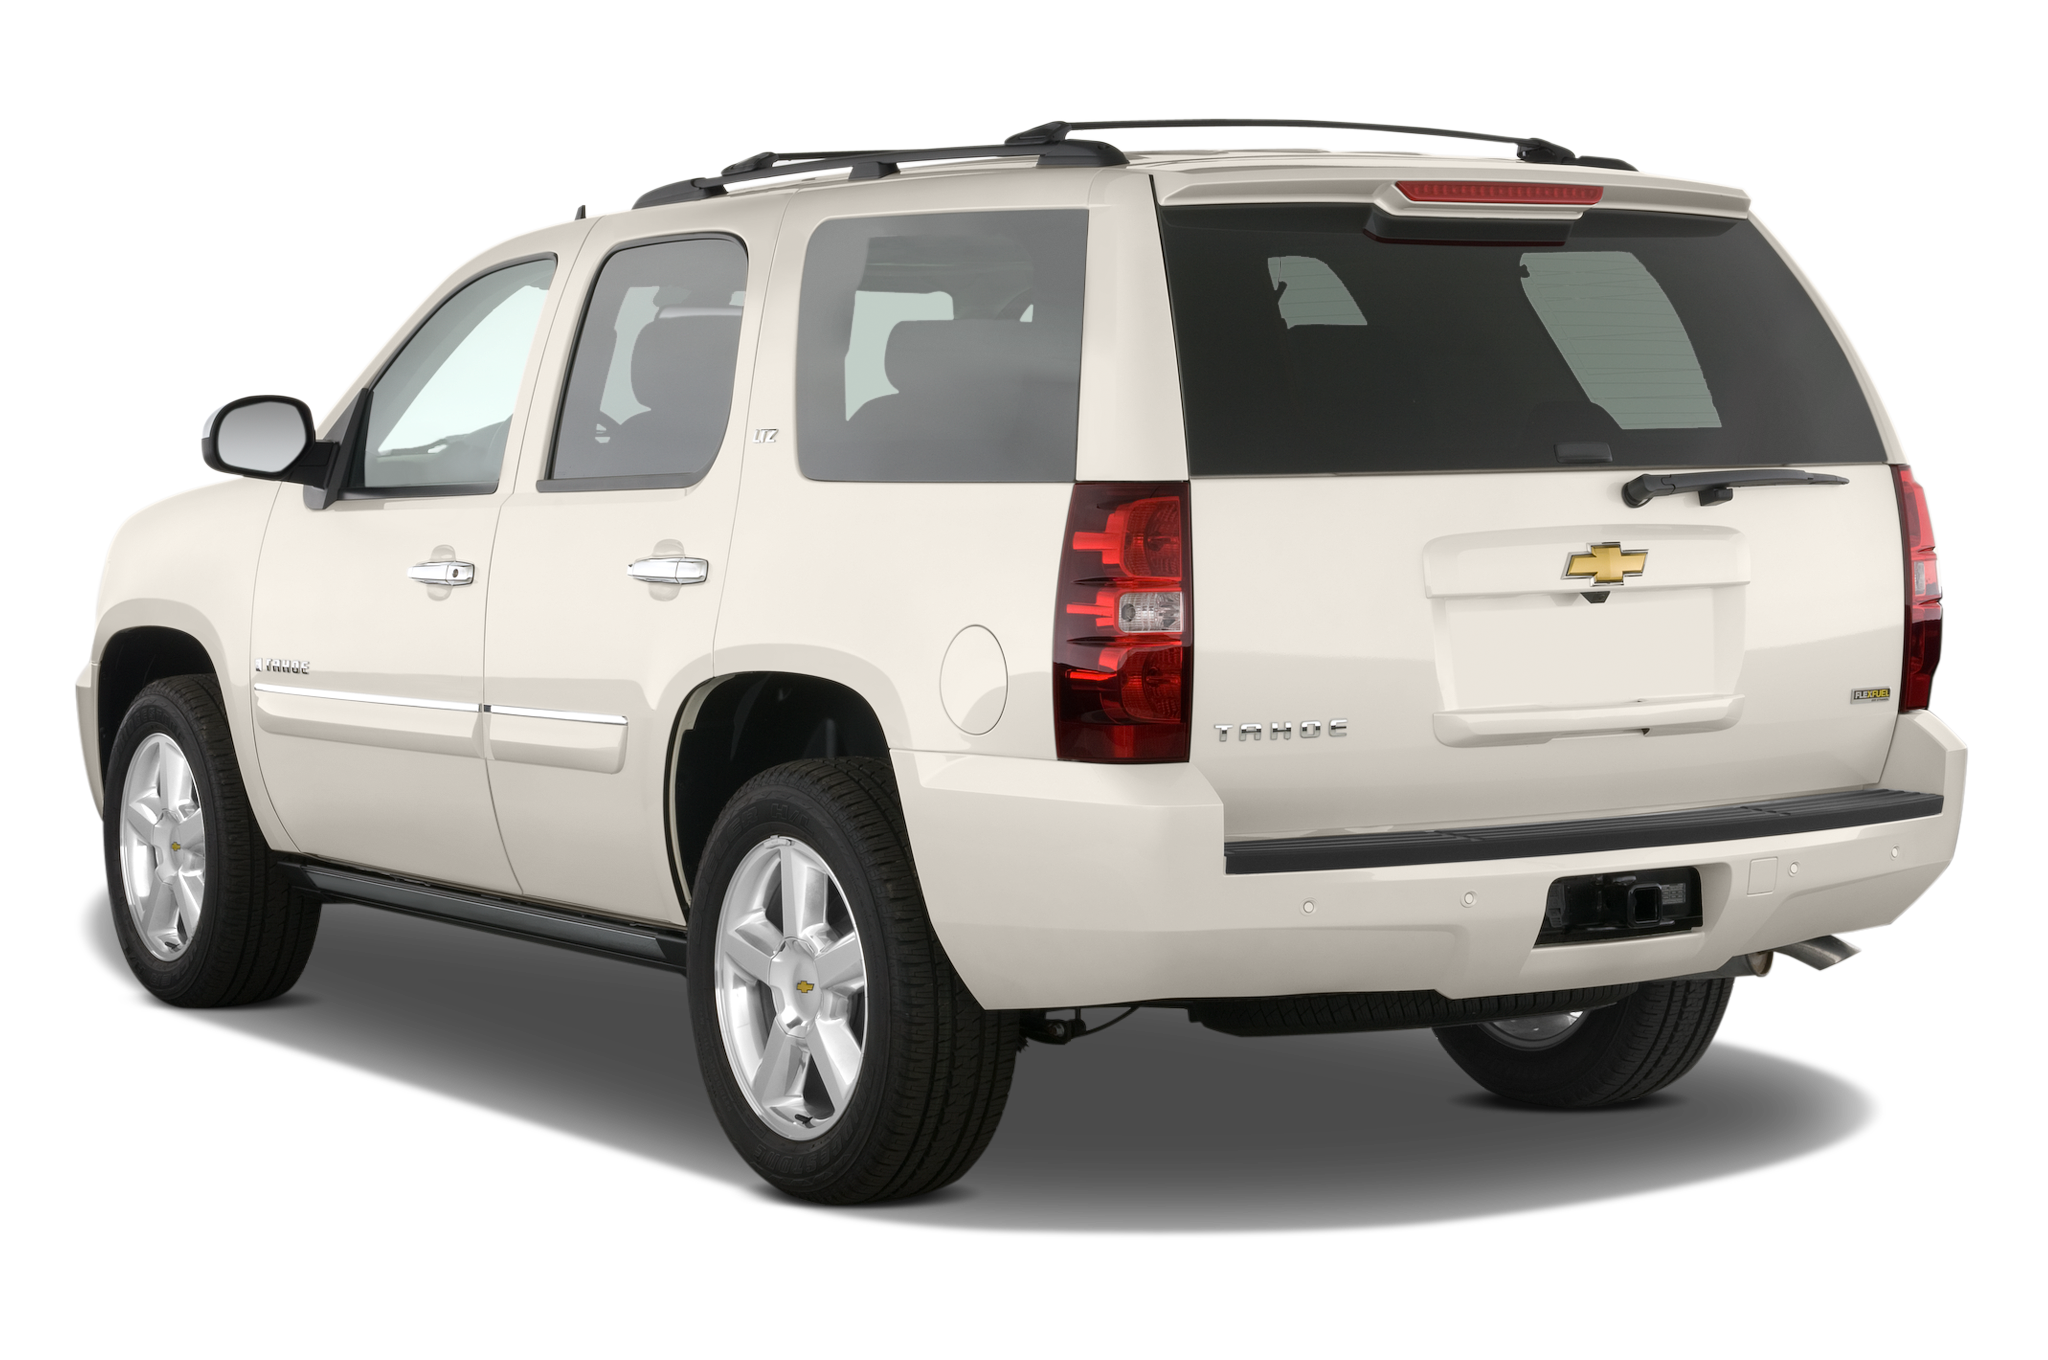 price reviews tahoe photos ls features interior suv chevrolet